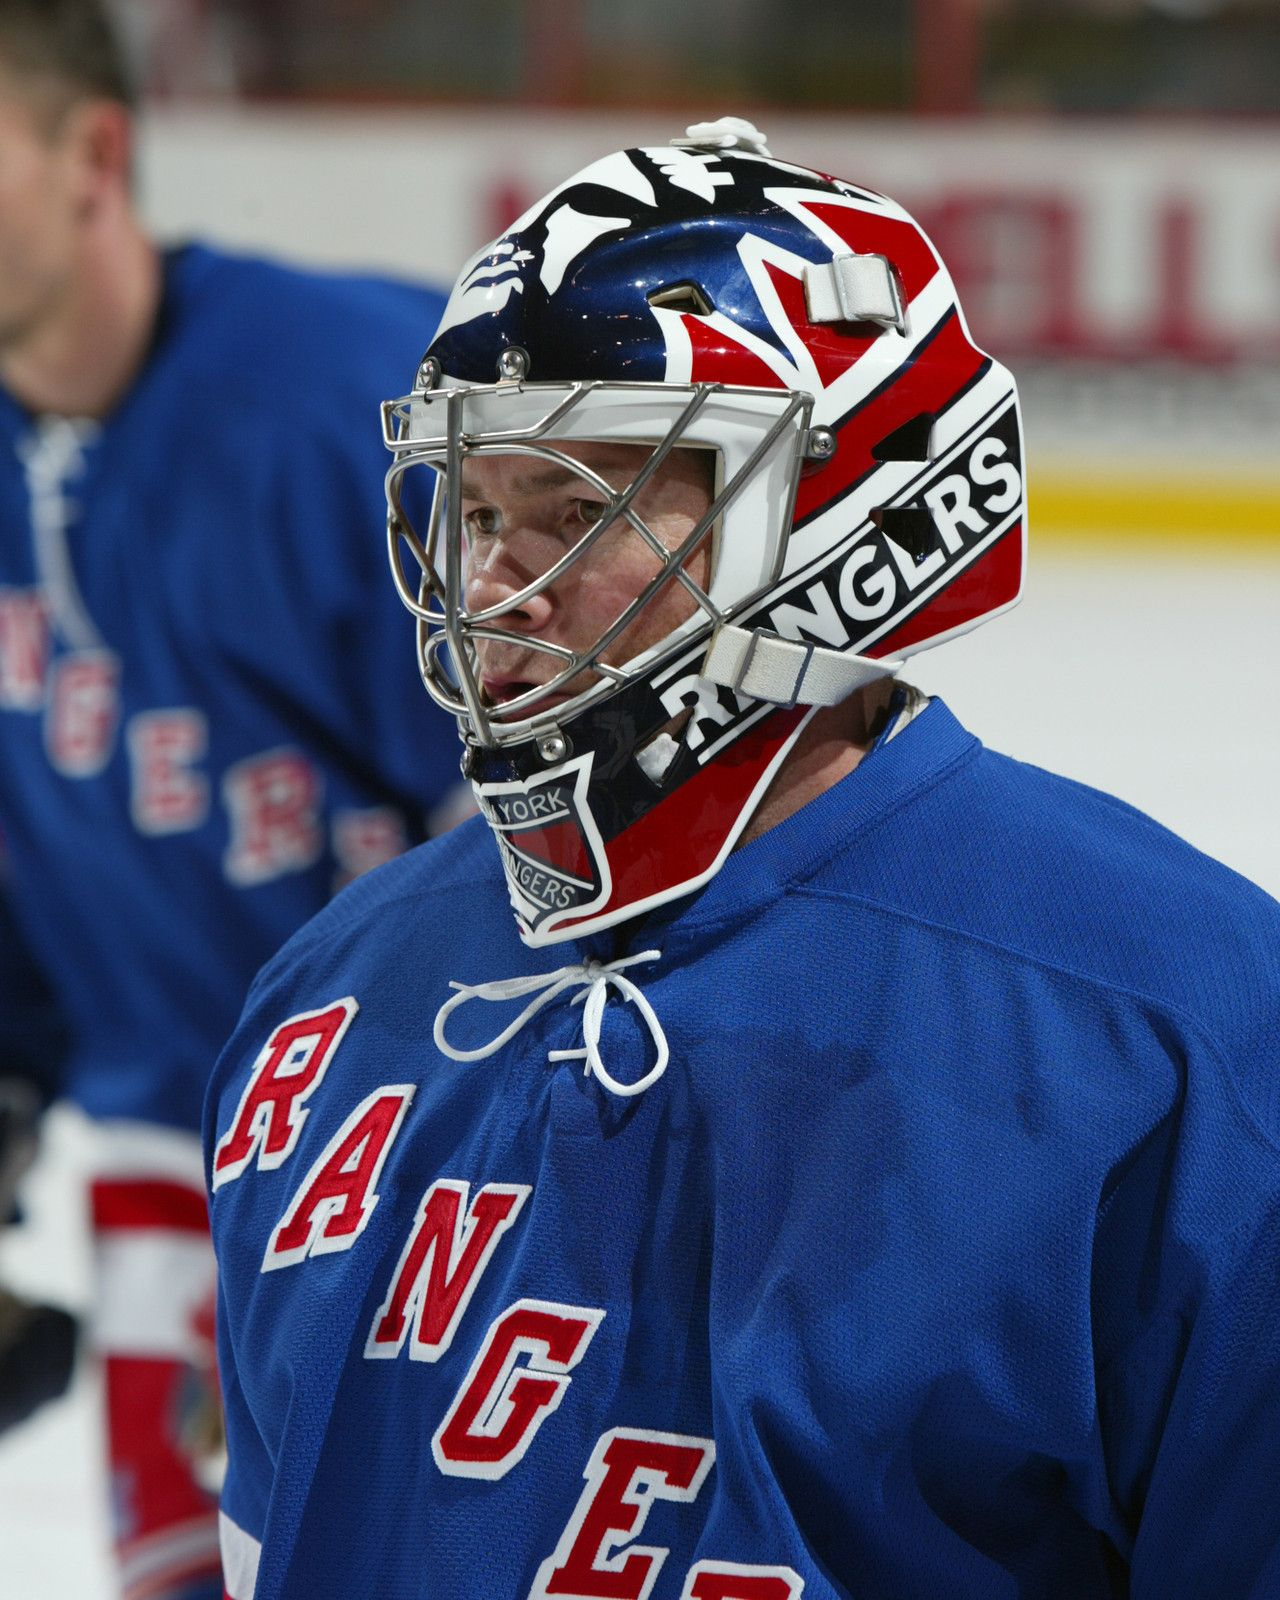 online store 4158e 18f14 MIKE RICHTER Unsigned NEW YORK RANGERS 8x10 Photo   Mike ...